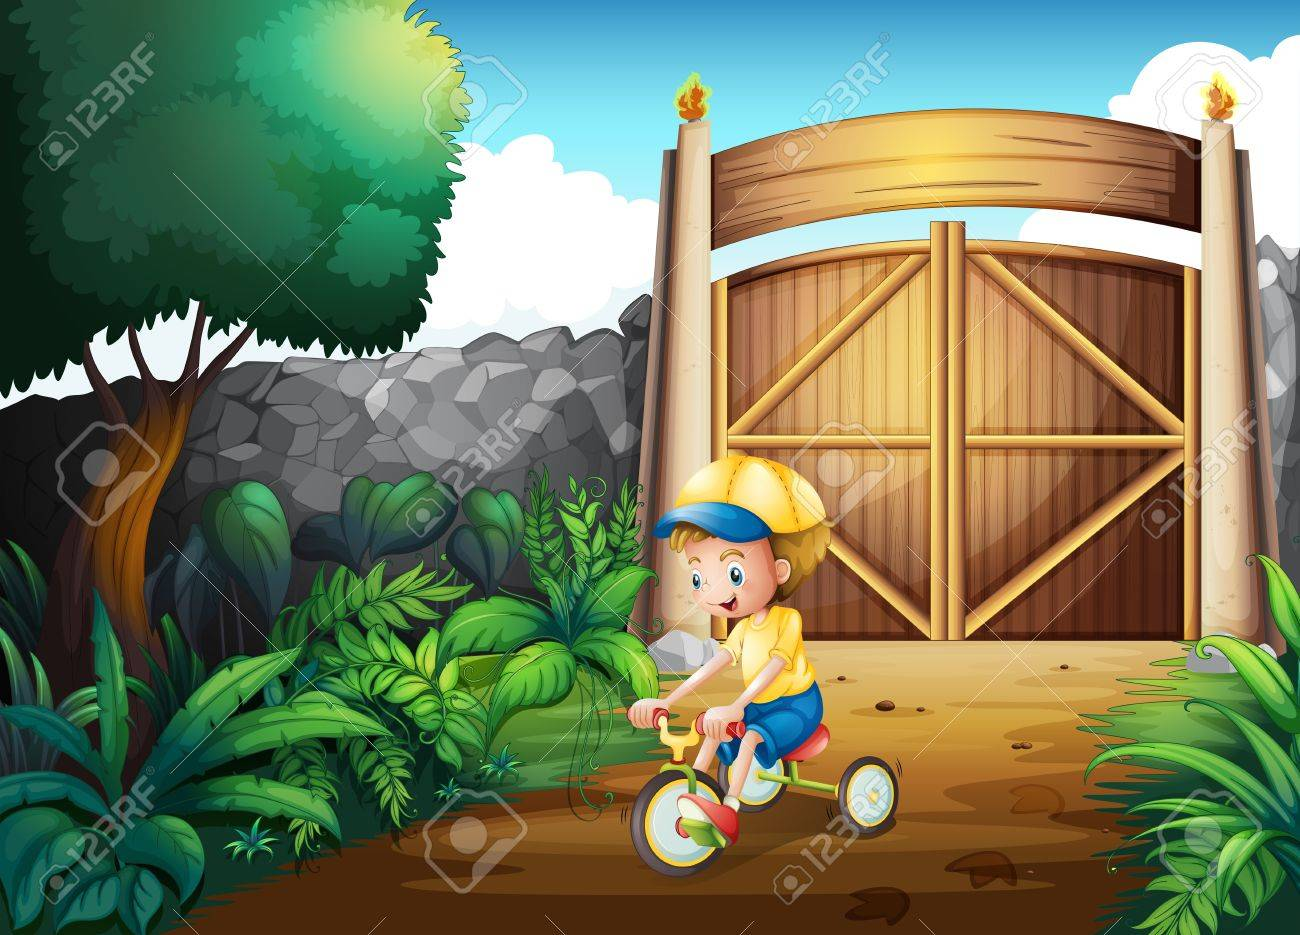 Illustration of a small child playing inside the gate Stock Vector - 21426815